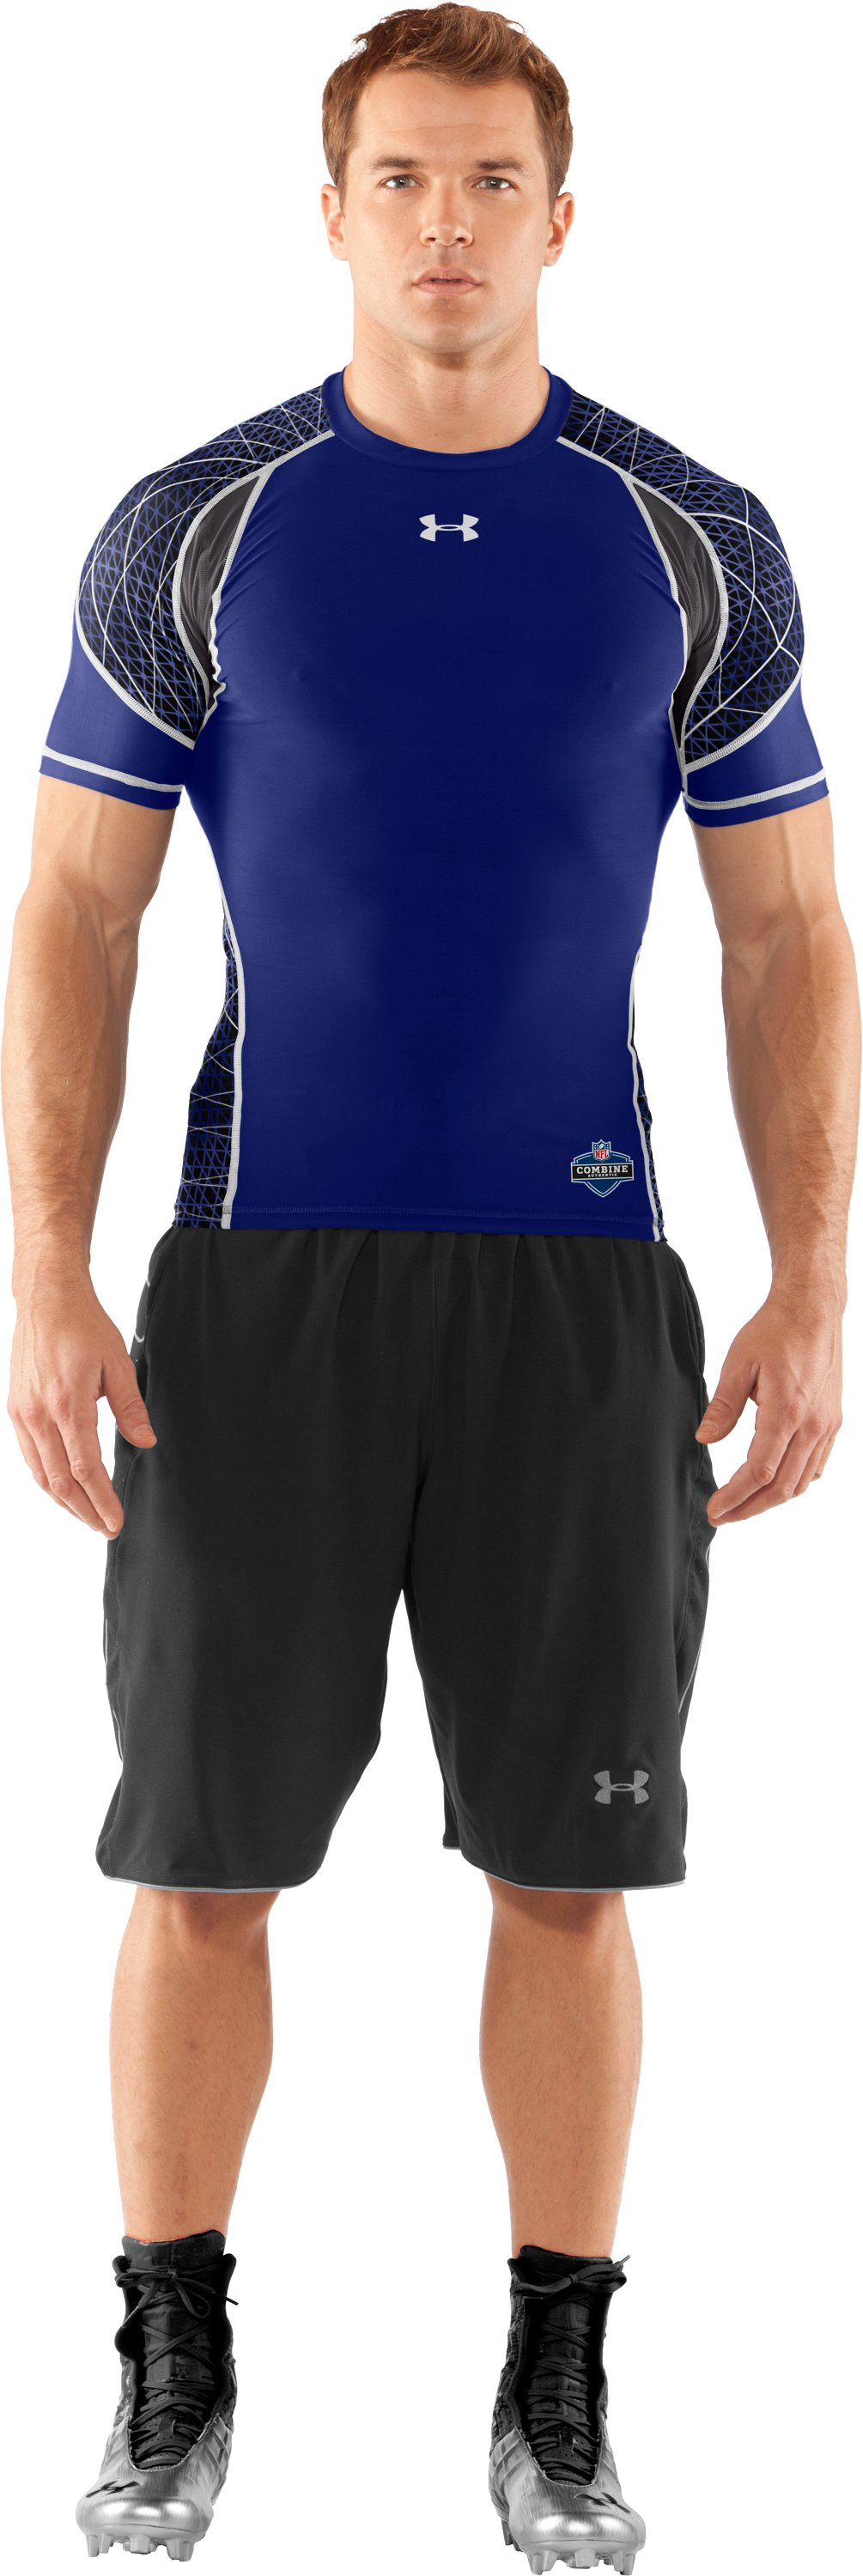 Men's NFL Combine Authentic Warp Speed Short Sleeve, Royal, zoomed image